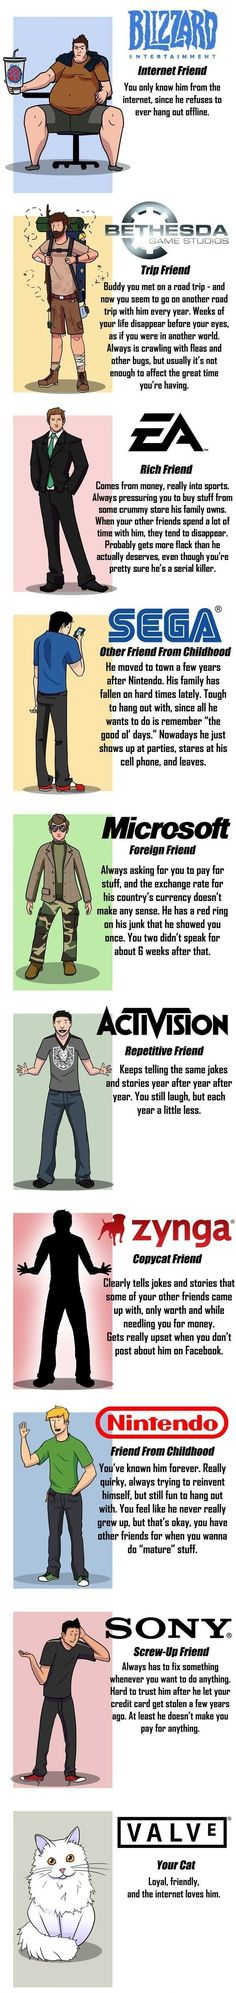 Your friends, explained by game developers...you have friends, do you?